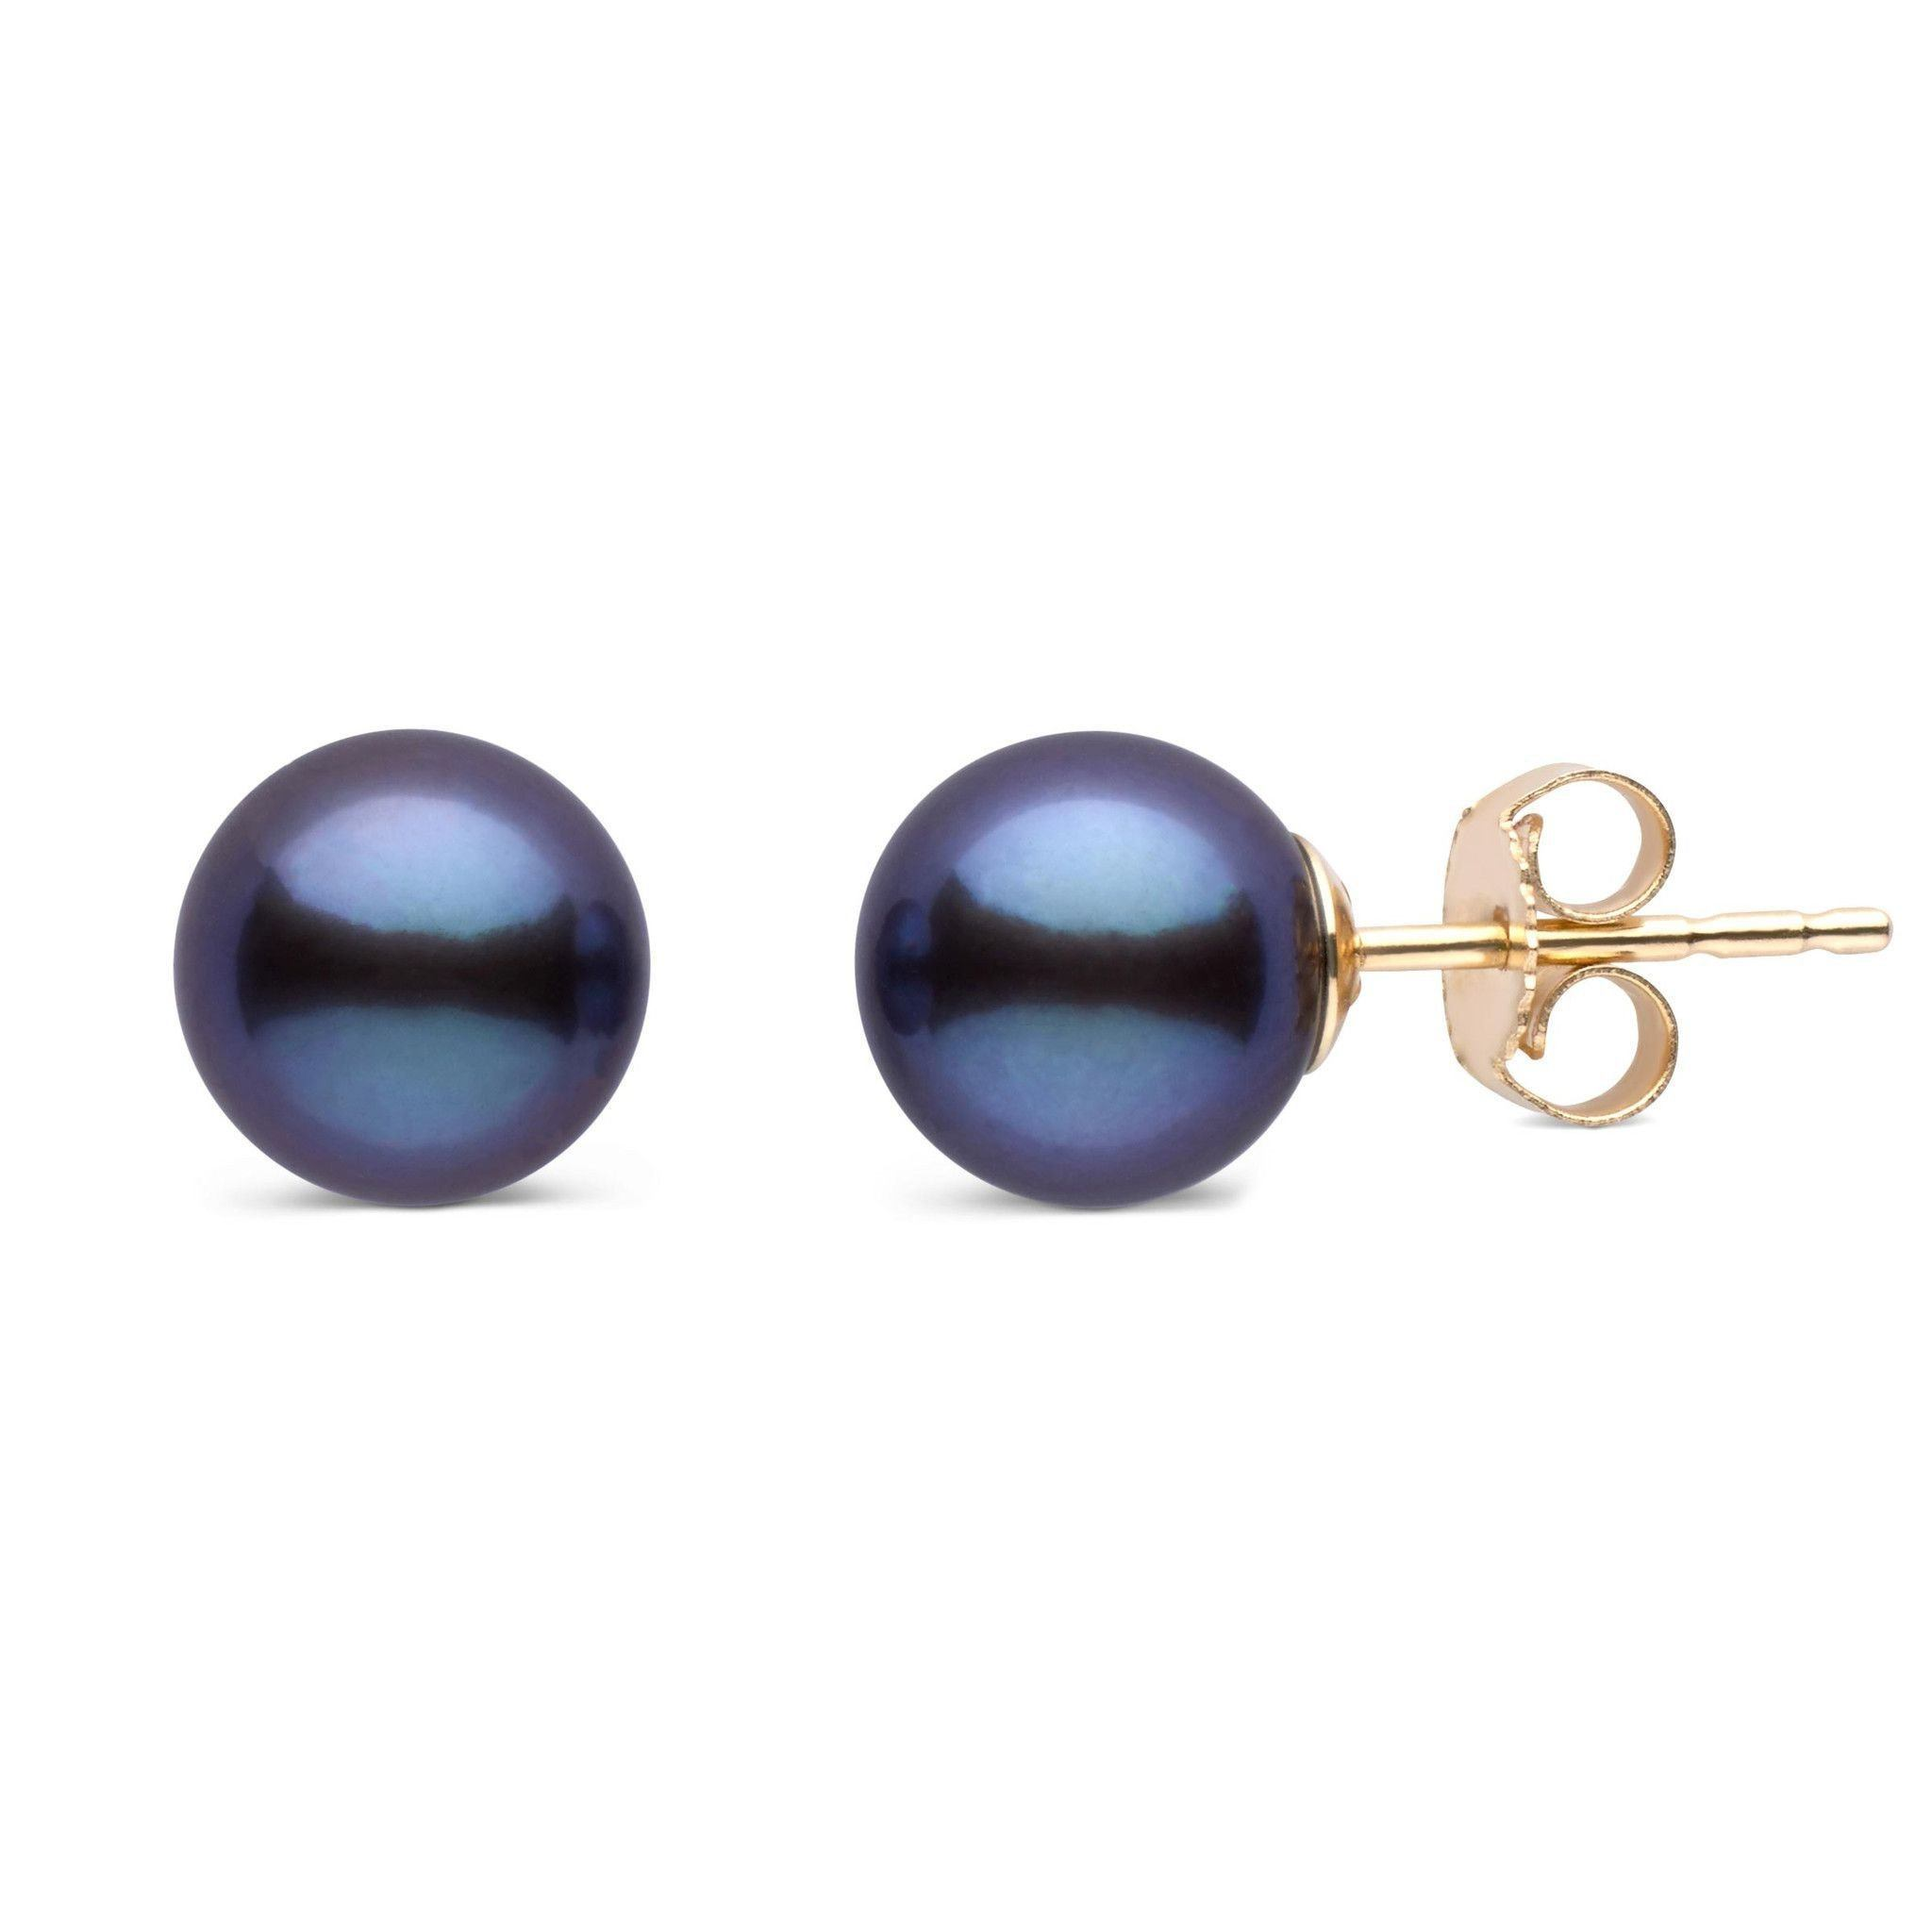 7.5-8.0 mm AAA Black Freshwater Pearl Stud Earrings